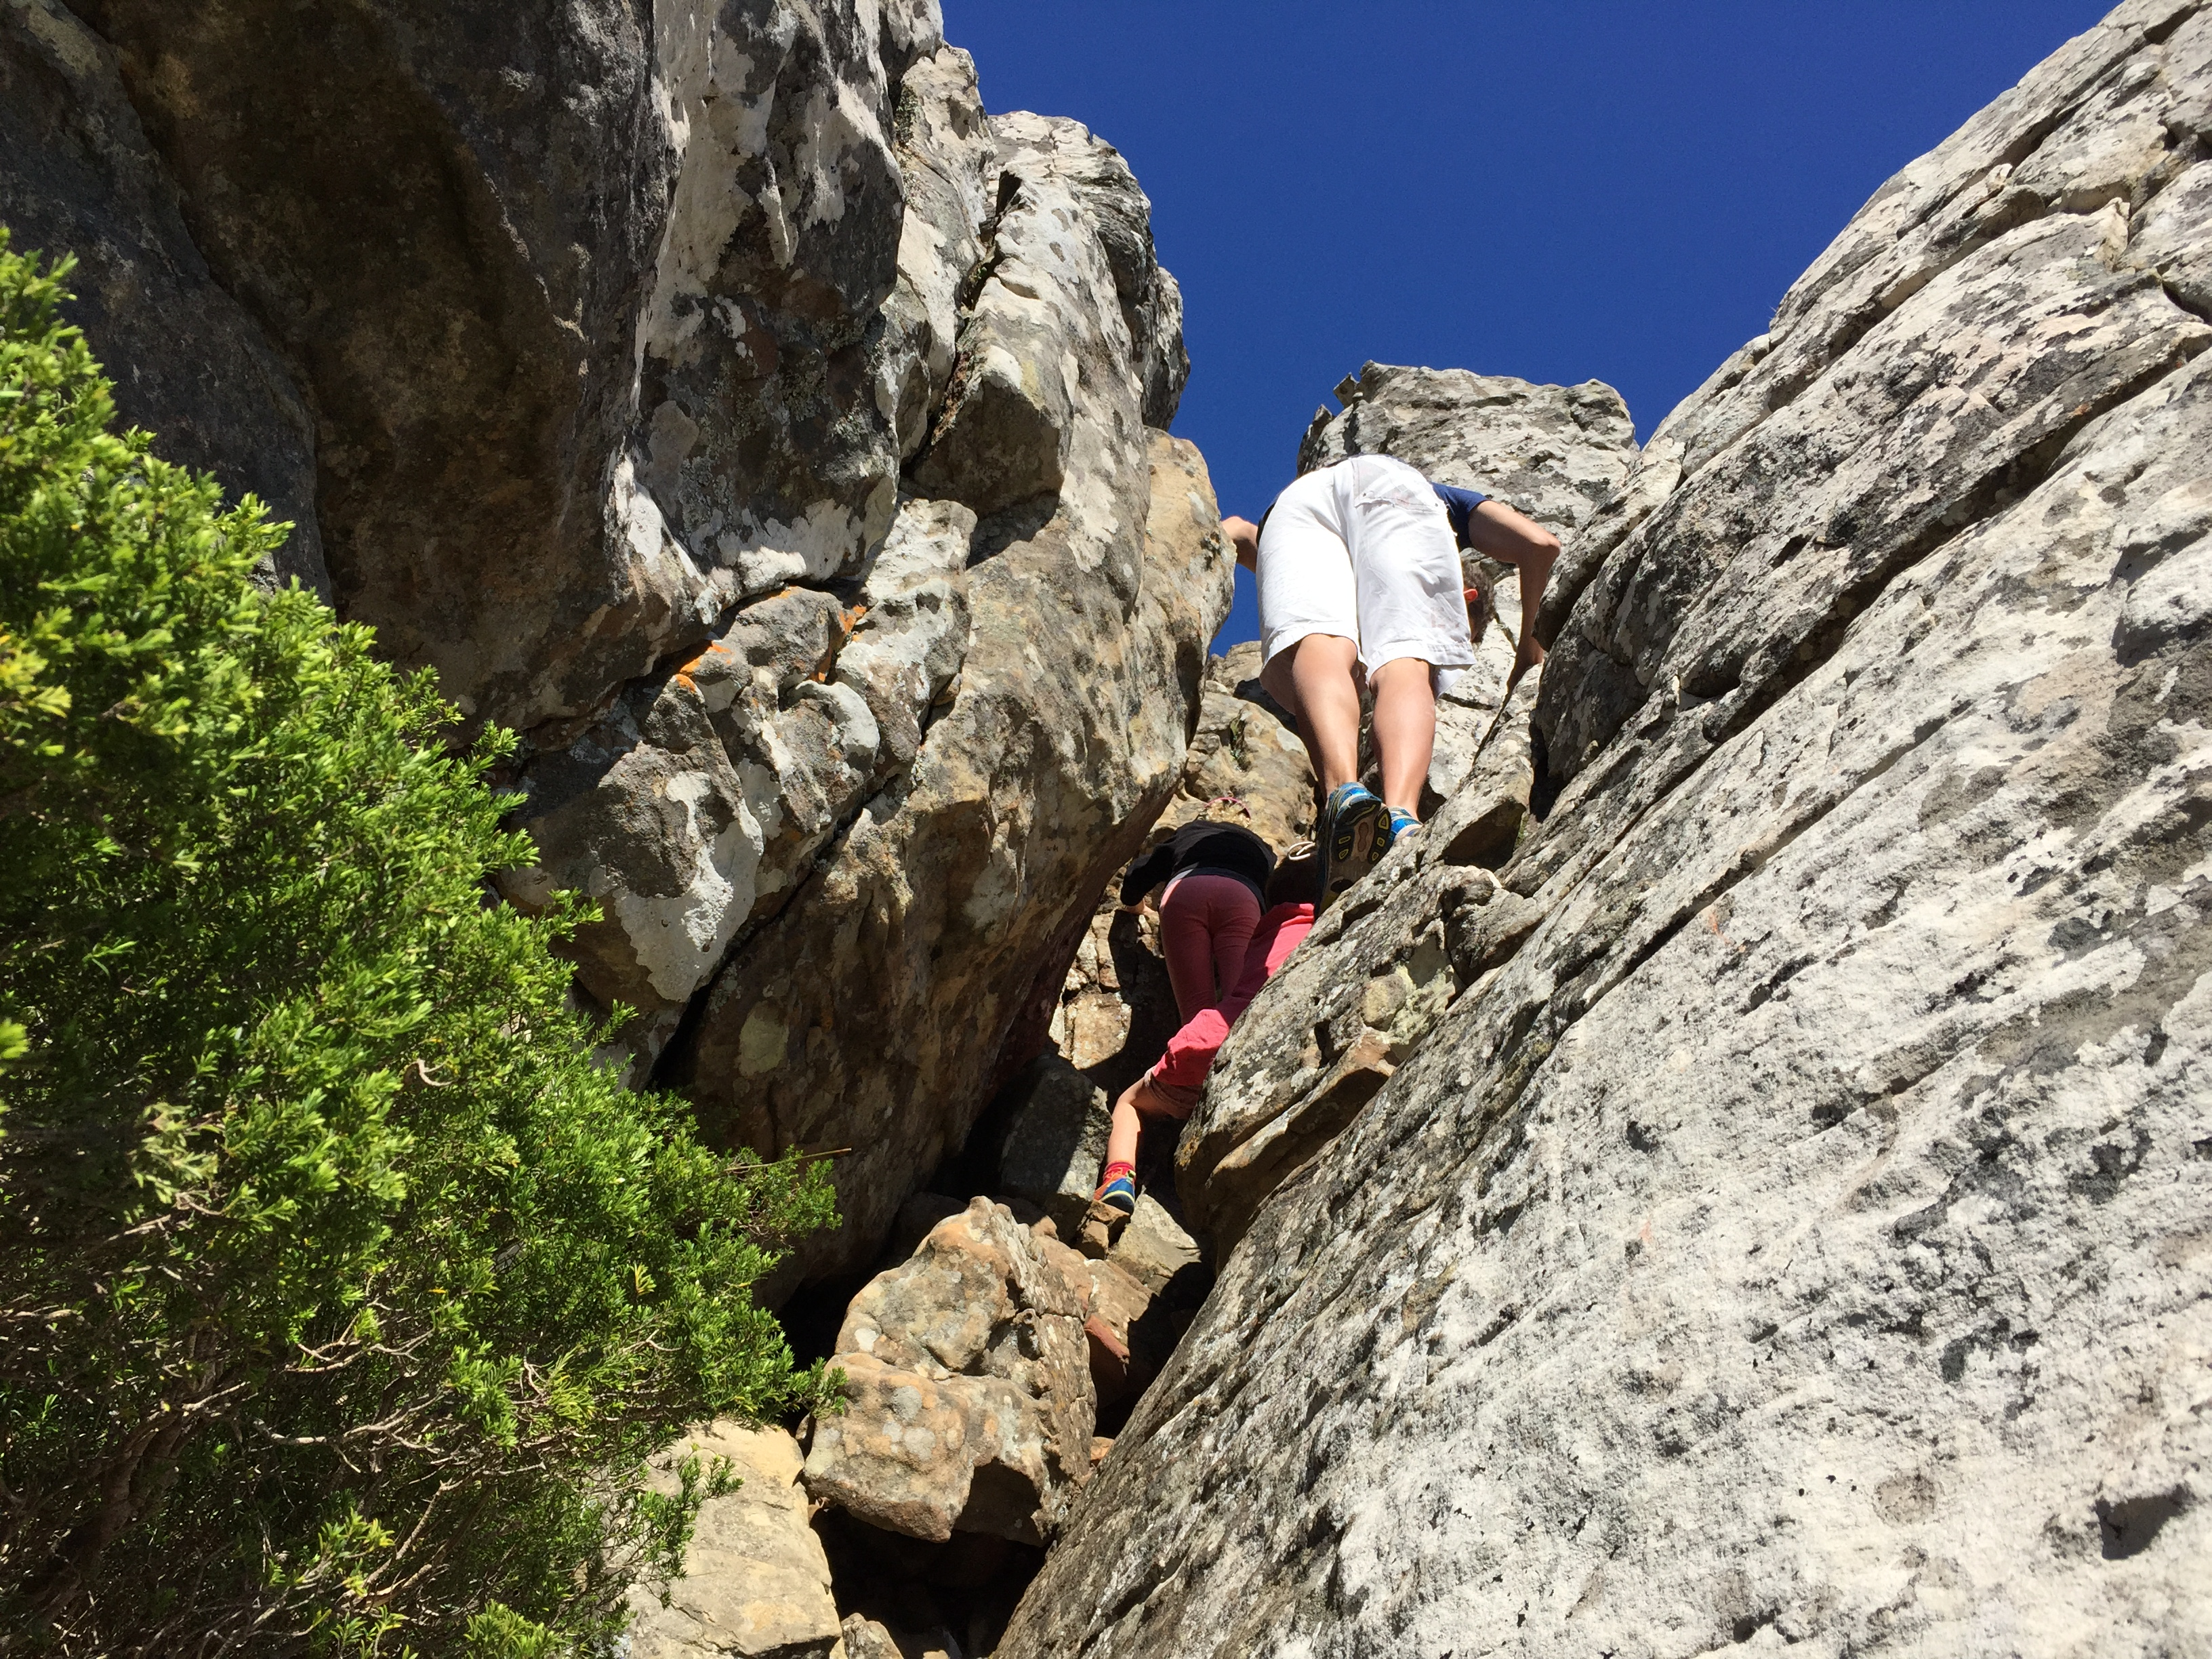 The Wuth Hiking Initiative – Teaching Children to Climb in All Weather Conditions